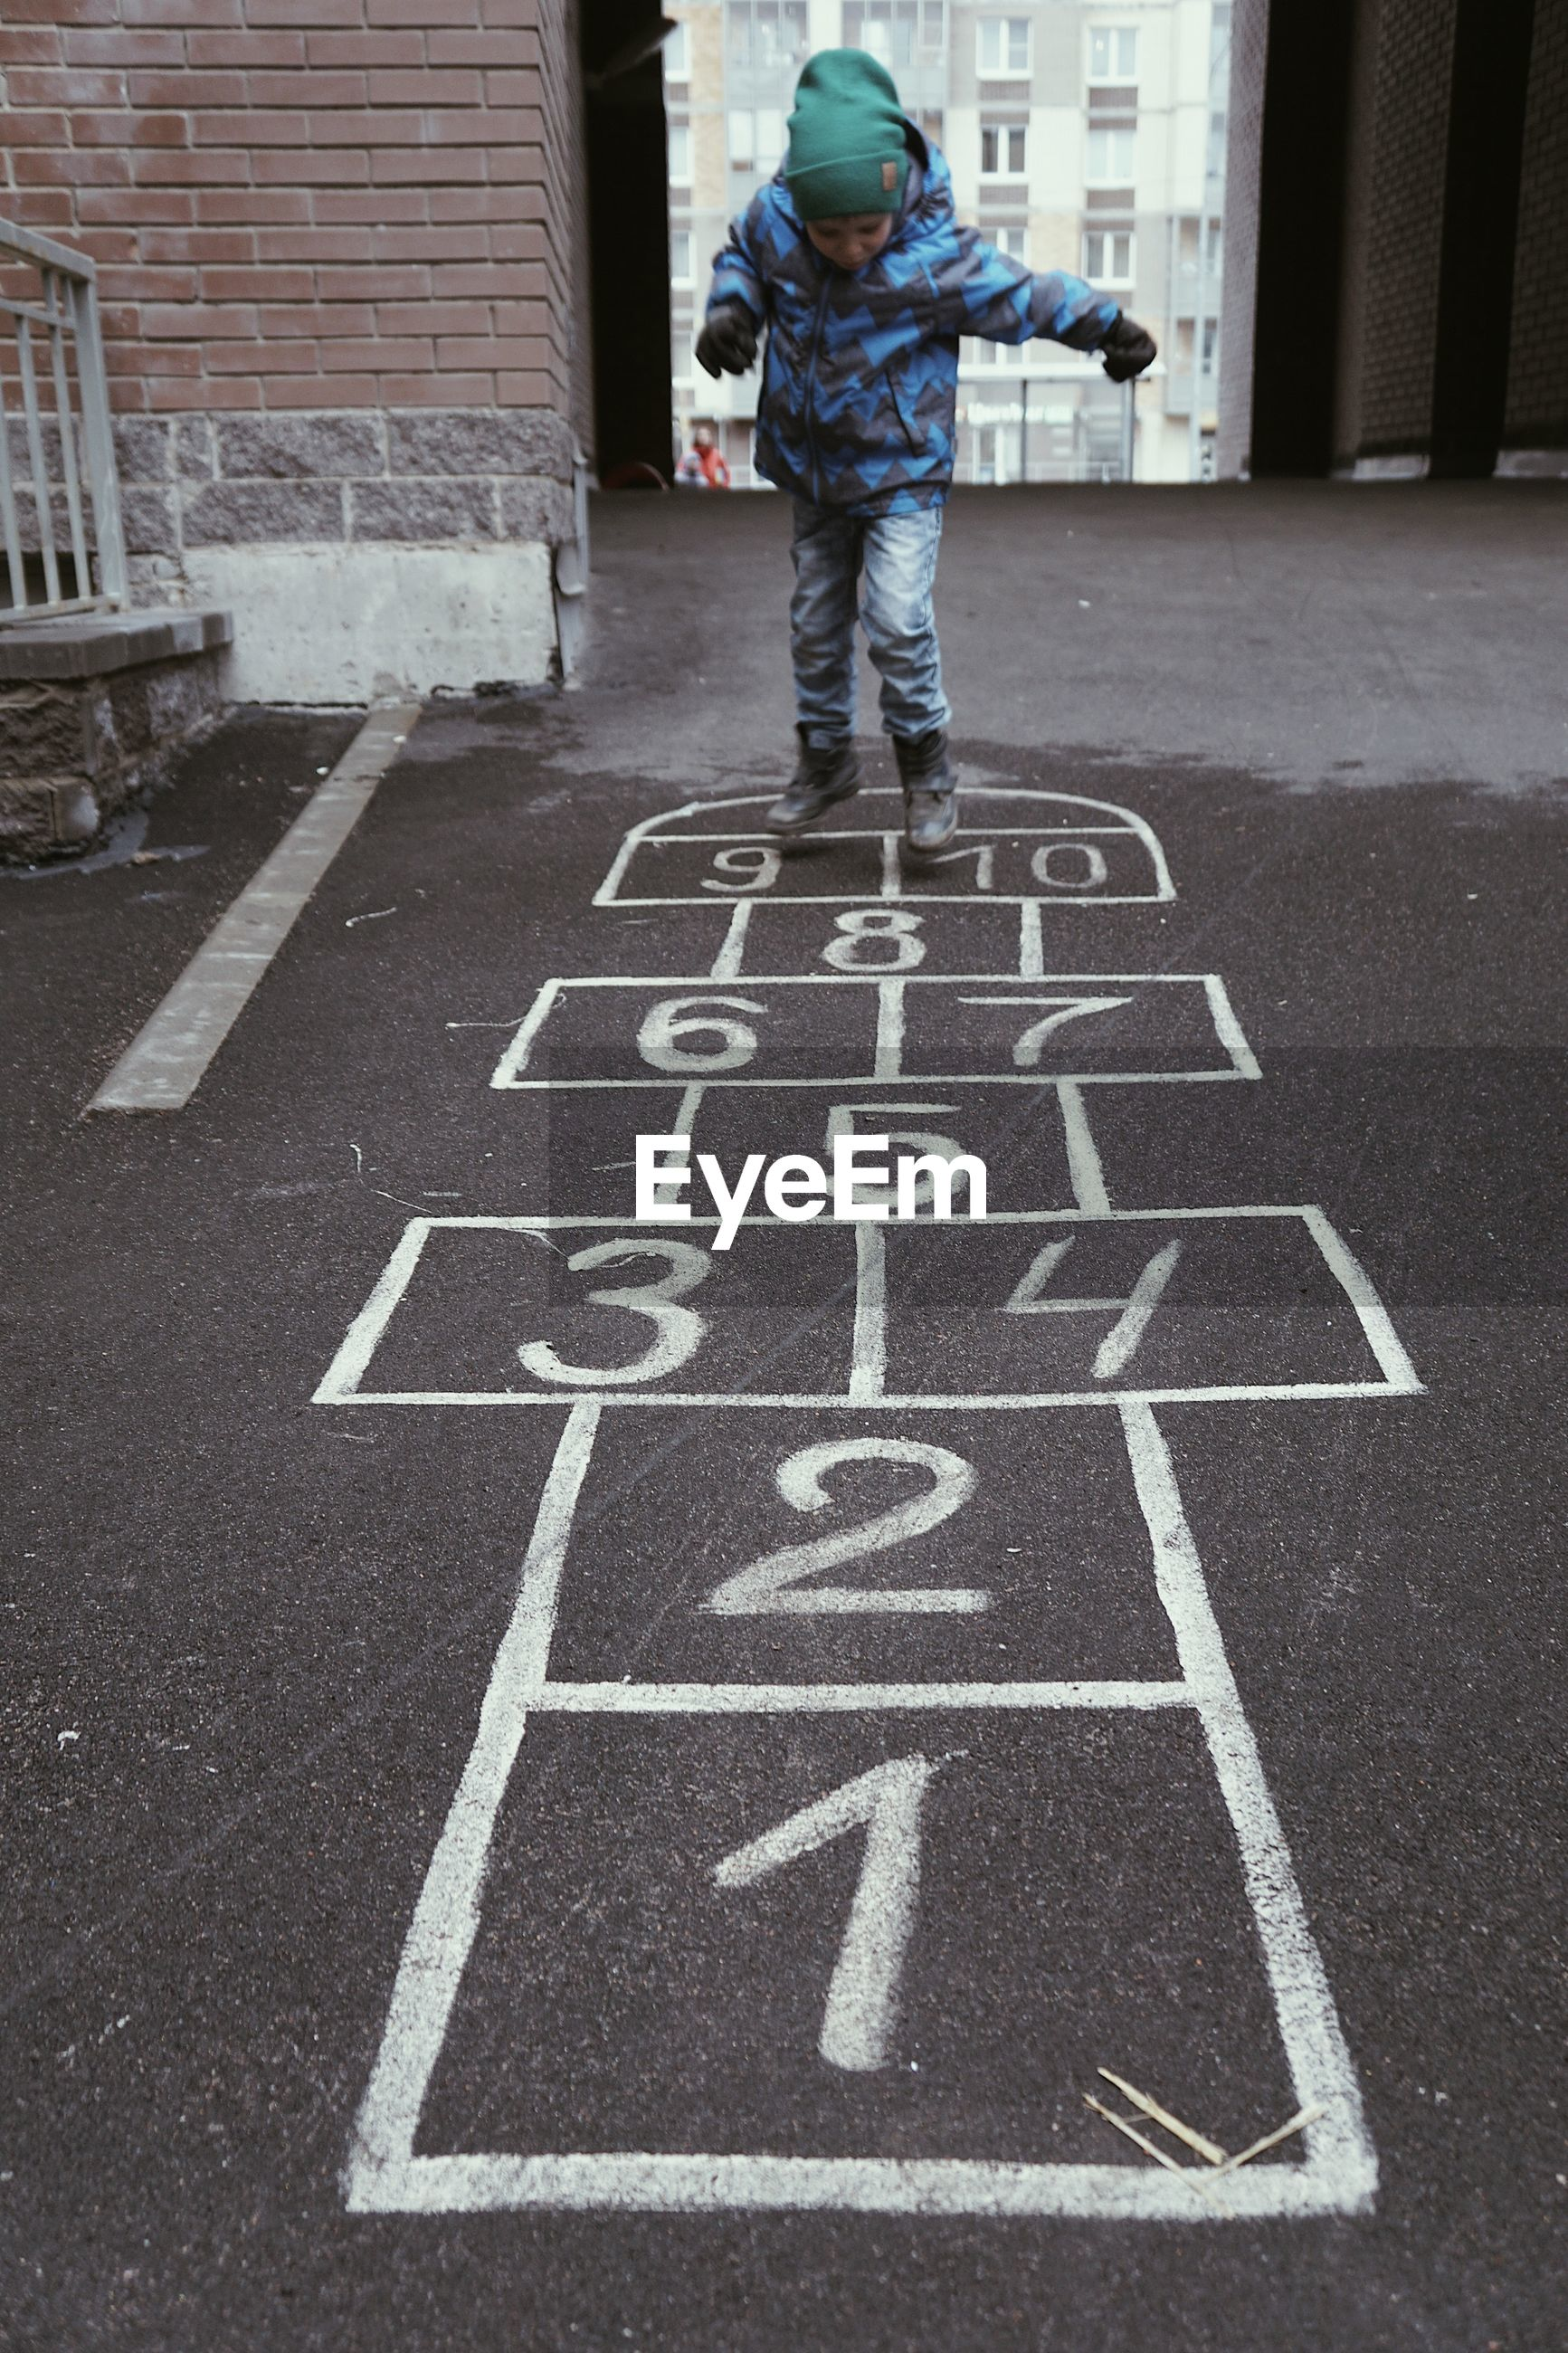 Boy playing hopscotch on street